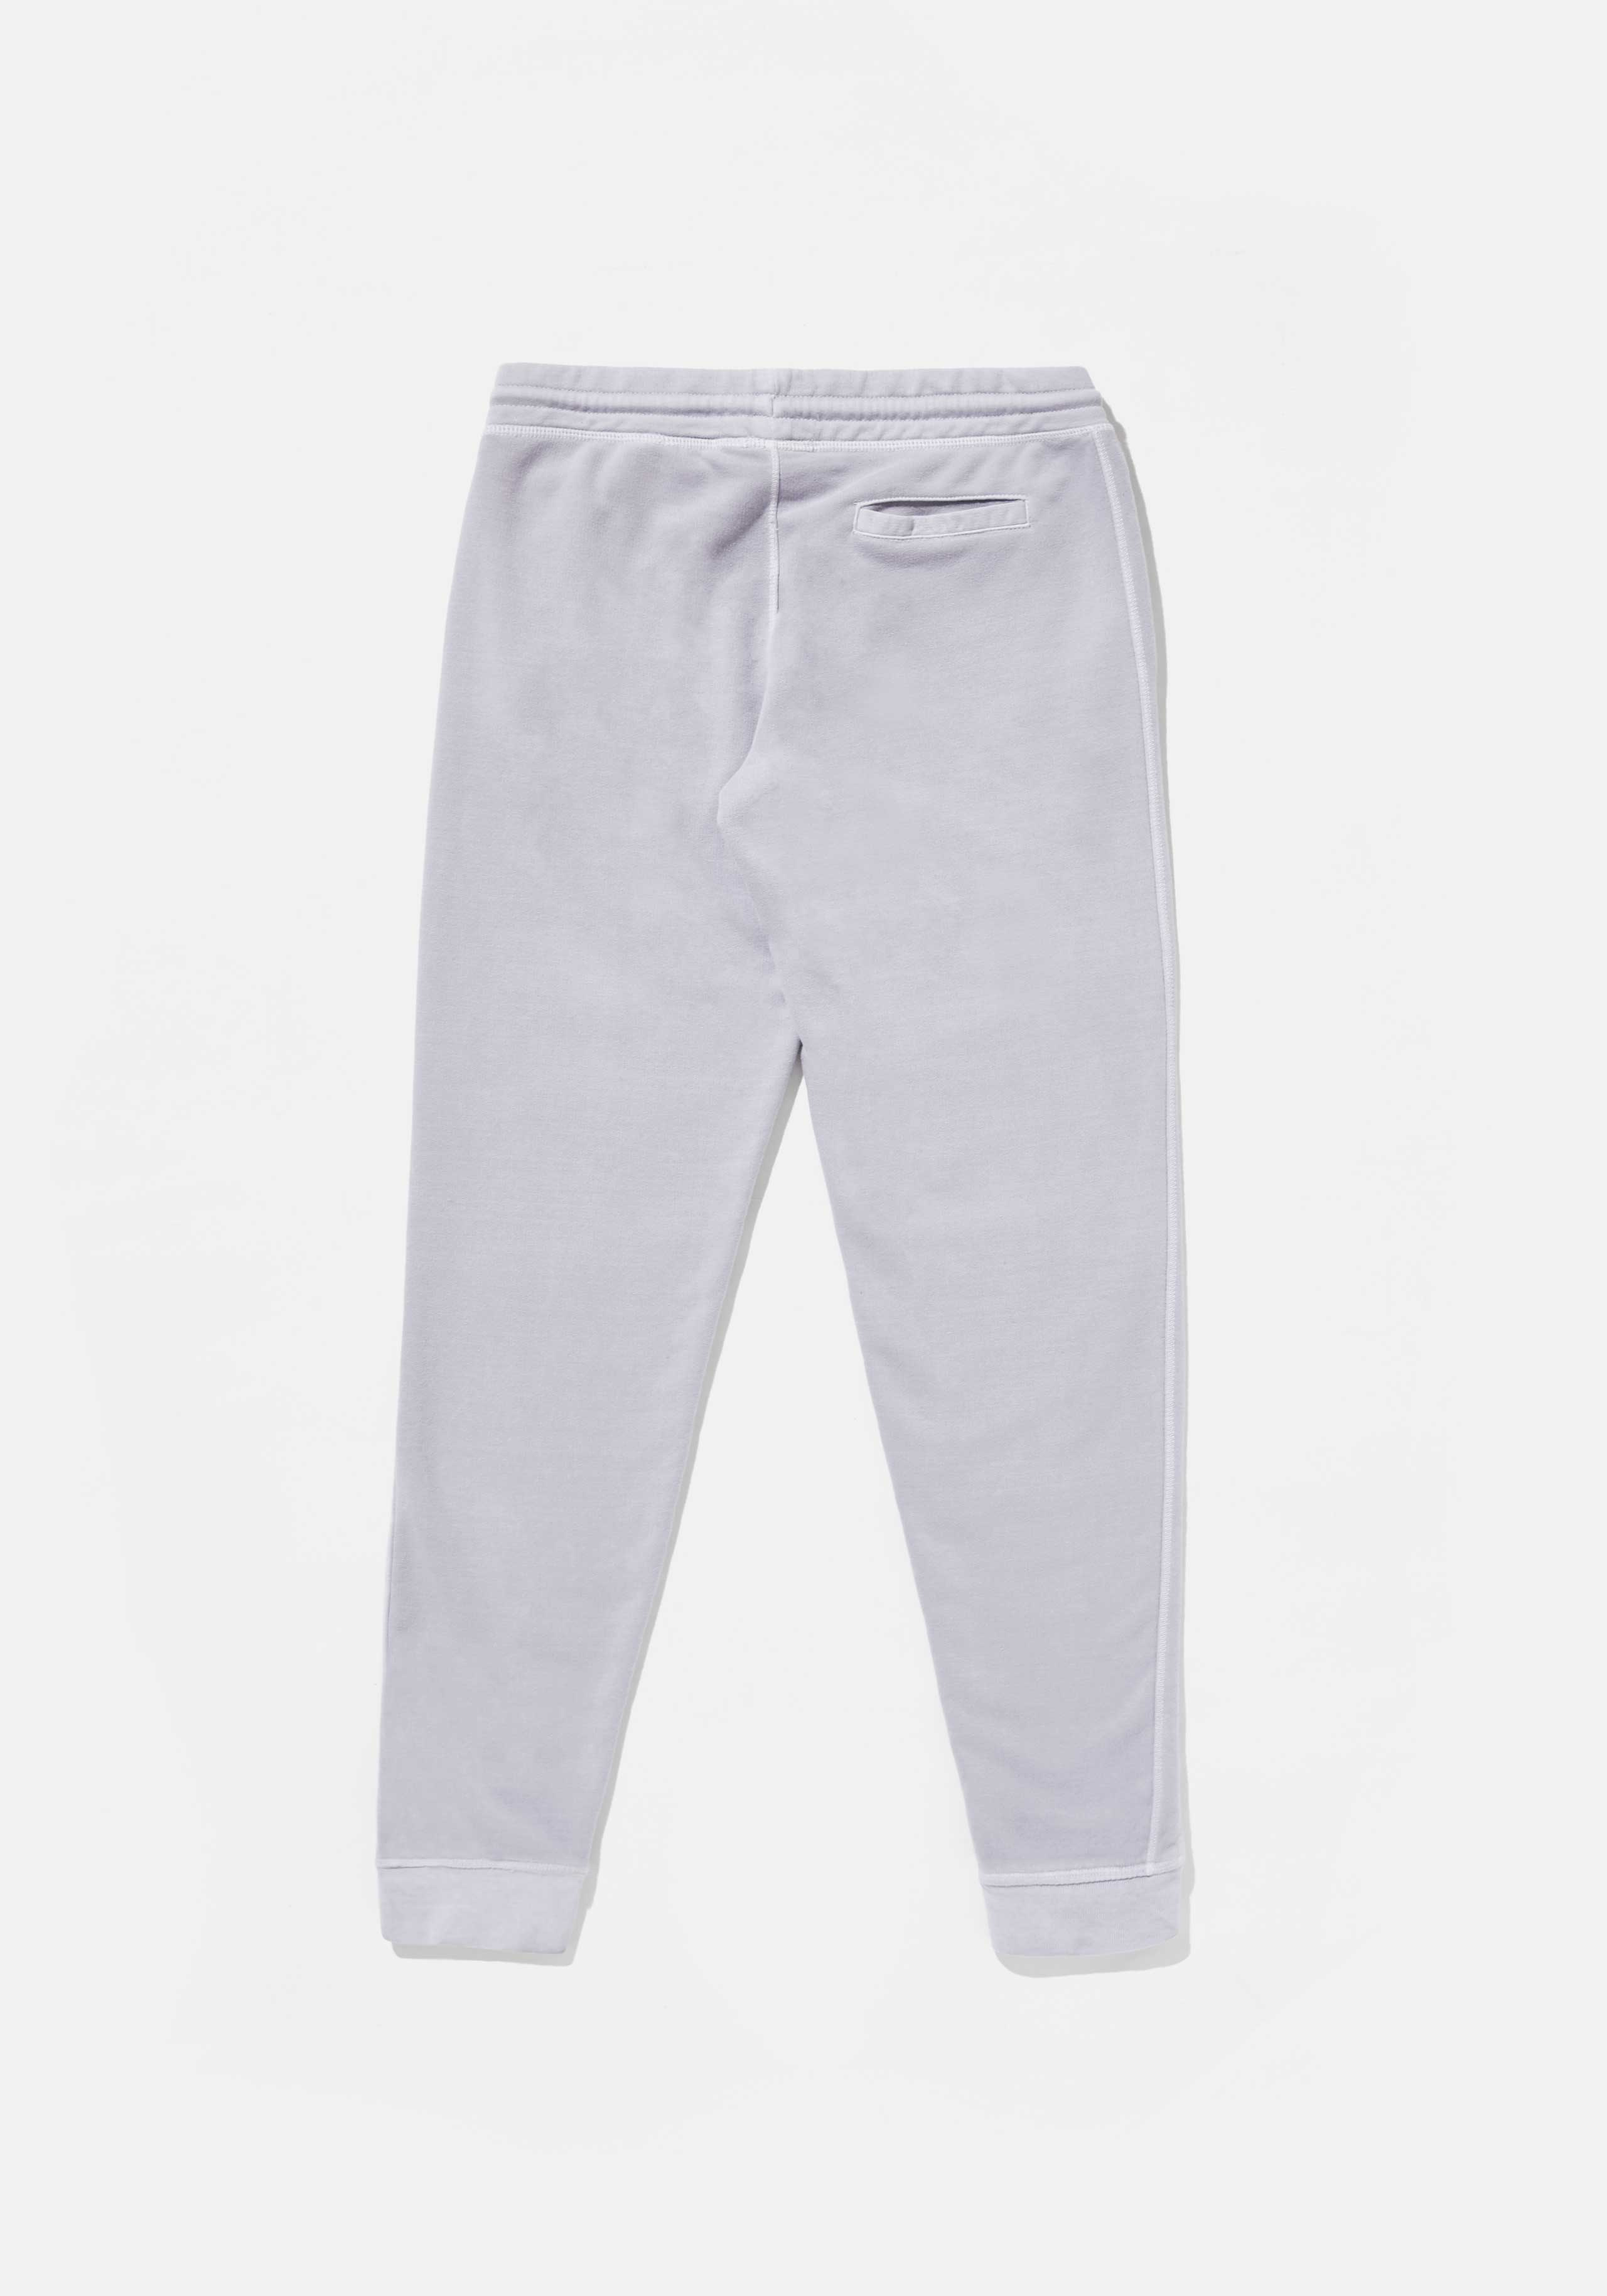 mki pigment dyed track pants 2